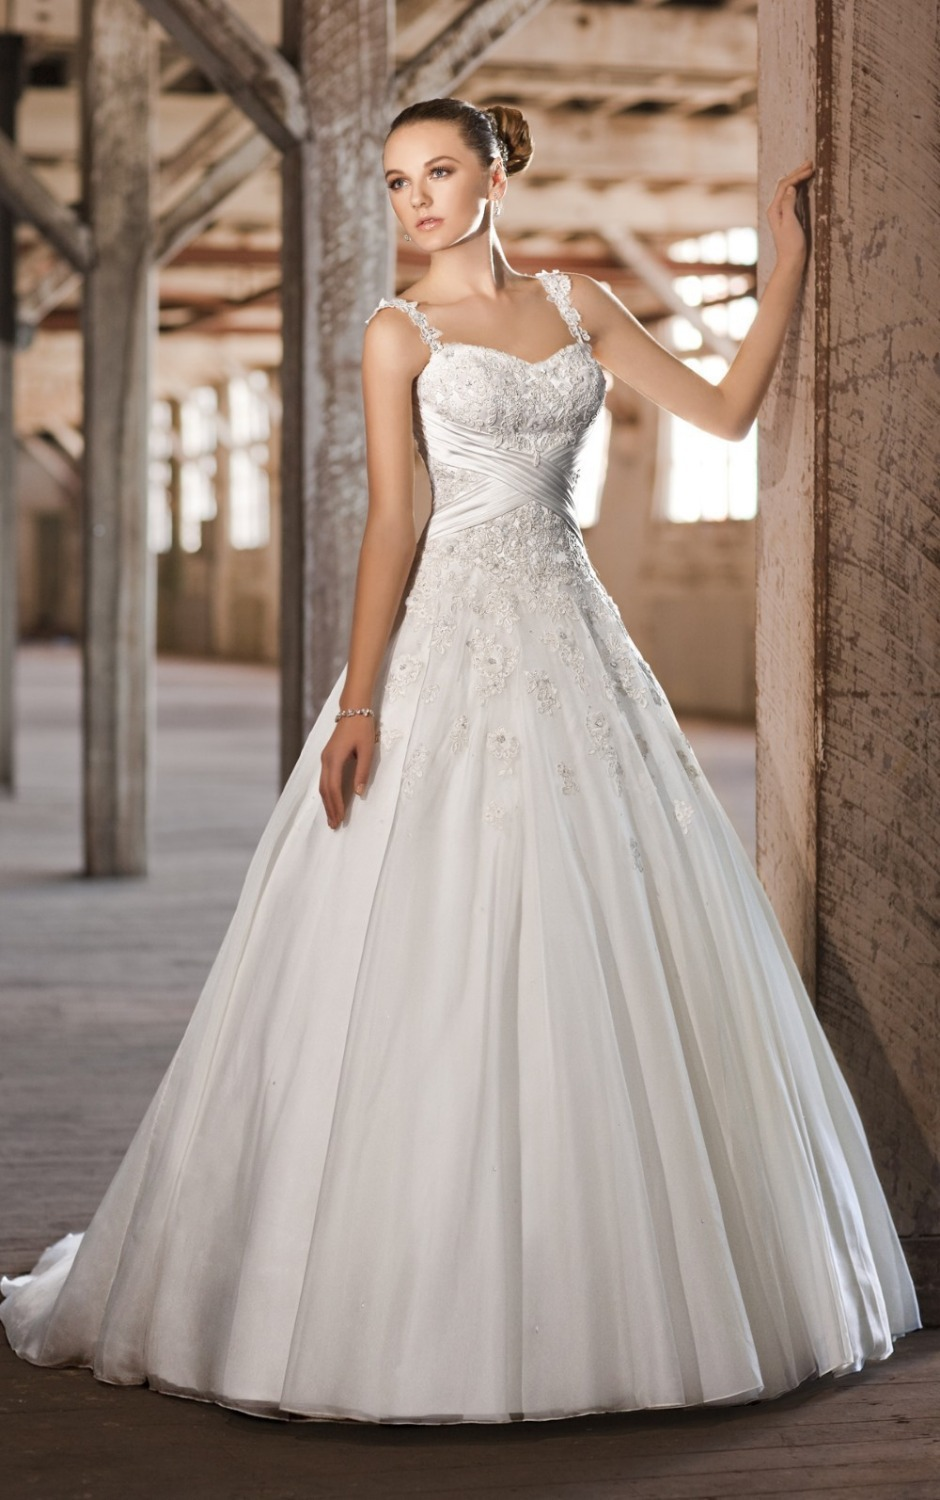 Organza satin wedding ball gown 2015 new arrival bridal for Satin and lace wedding dresses